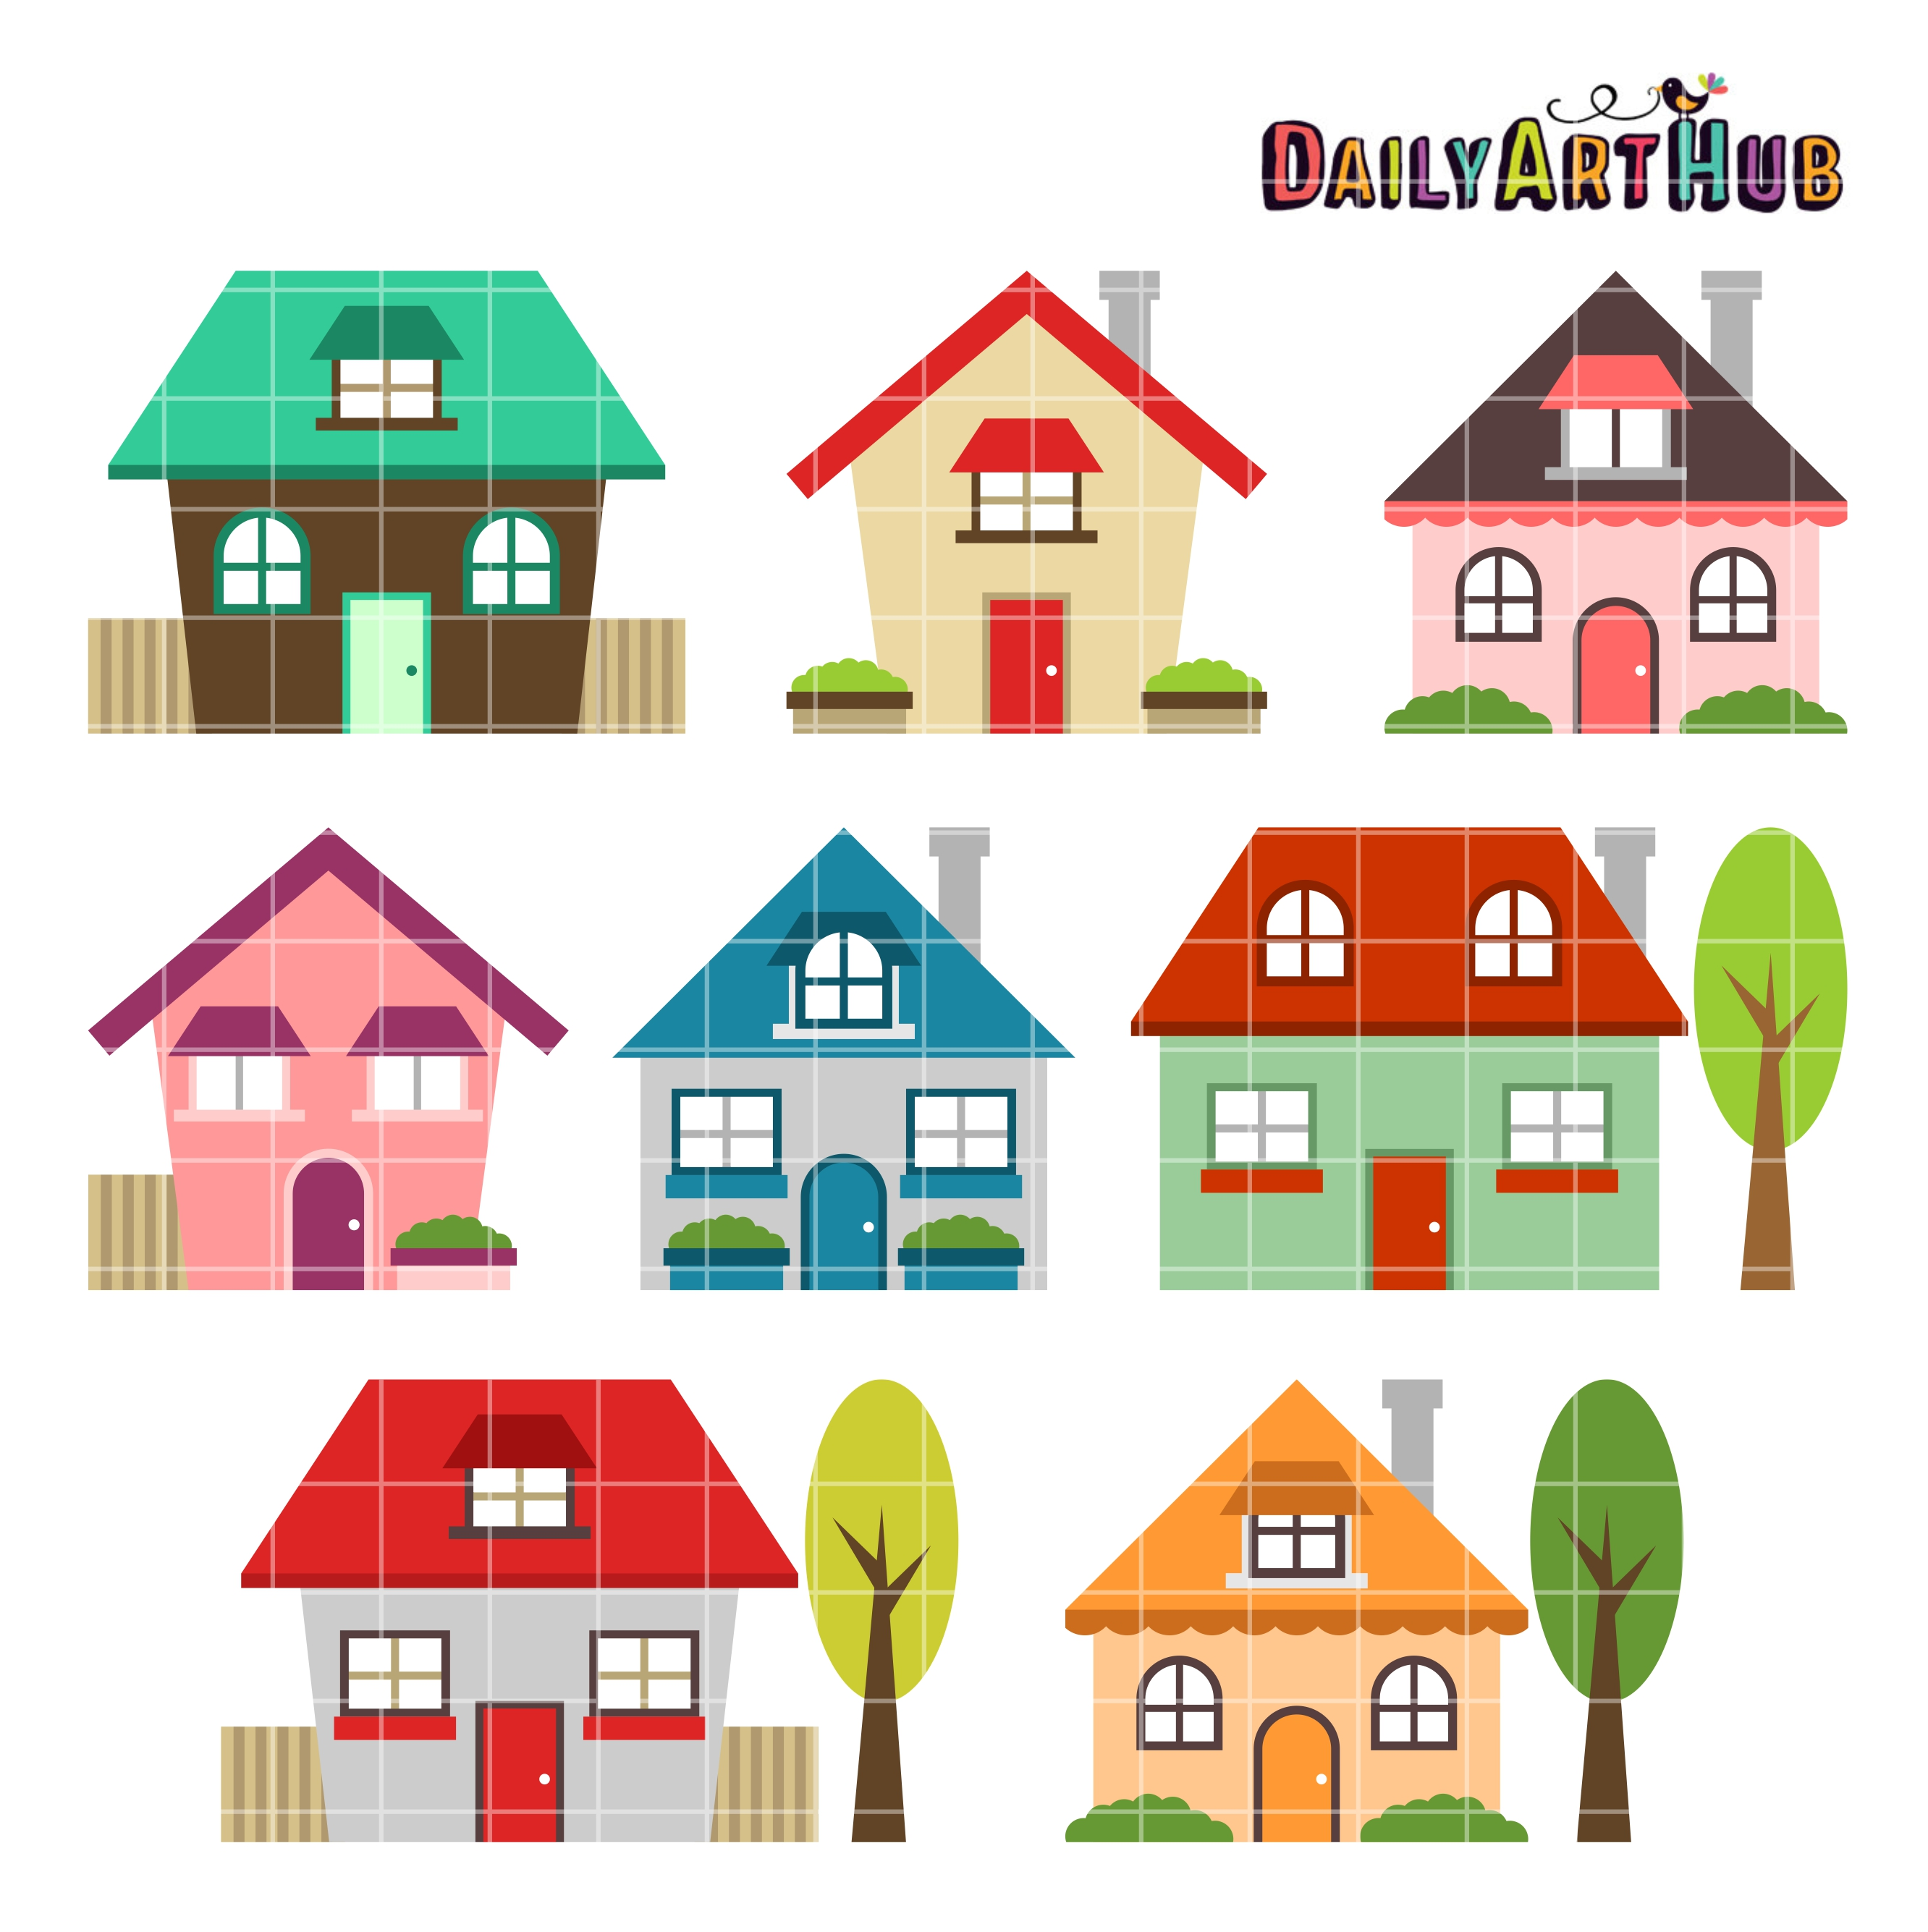 Cute houses clip art set daily art hub free clip art for Photos of cute houses